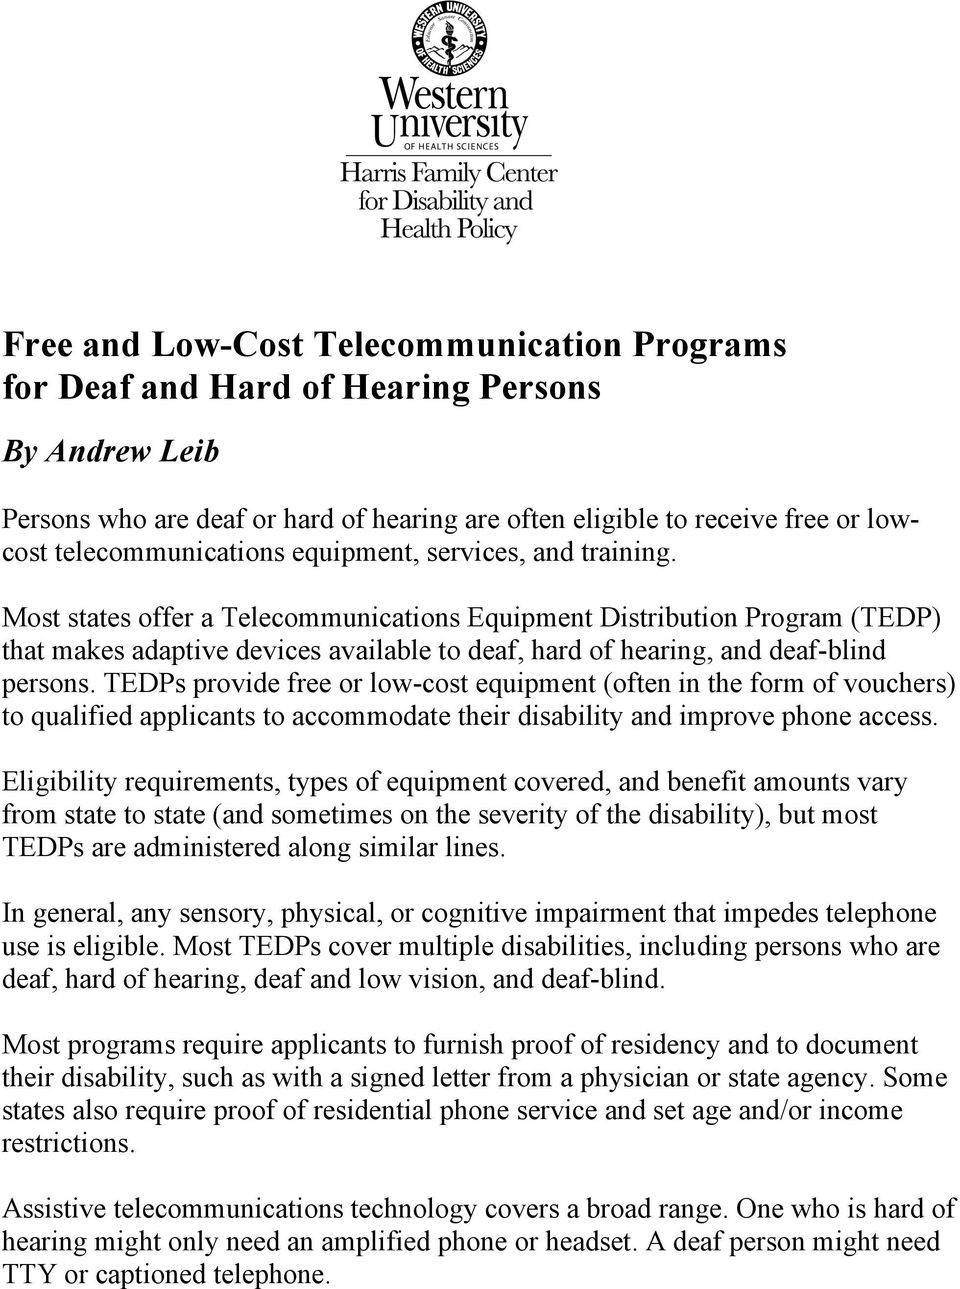 Most states offer a Telecommunications Equipment Distribution Program (TEDP) that makes adaptive devices available to deaf, hard of hearing, and deaf-blind persons.